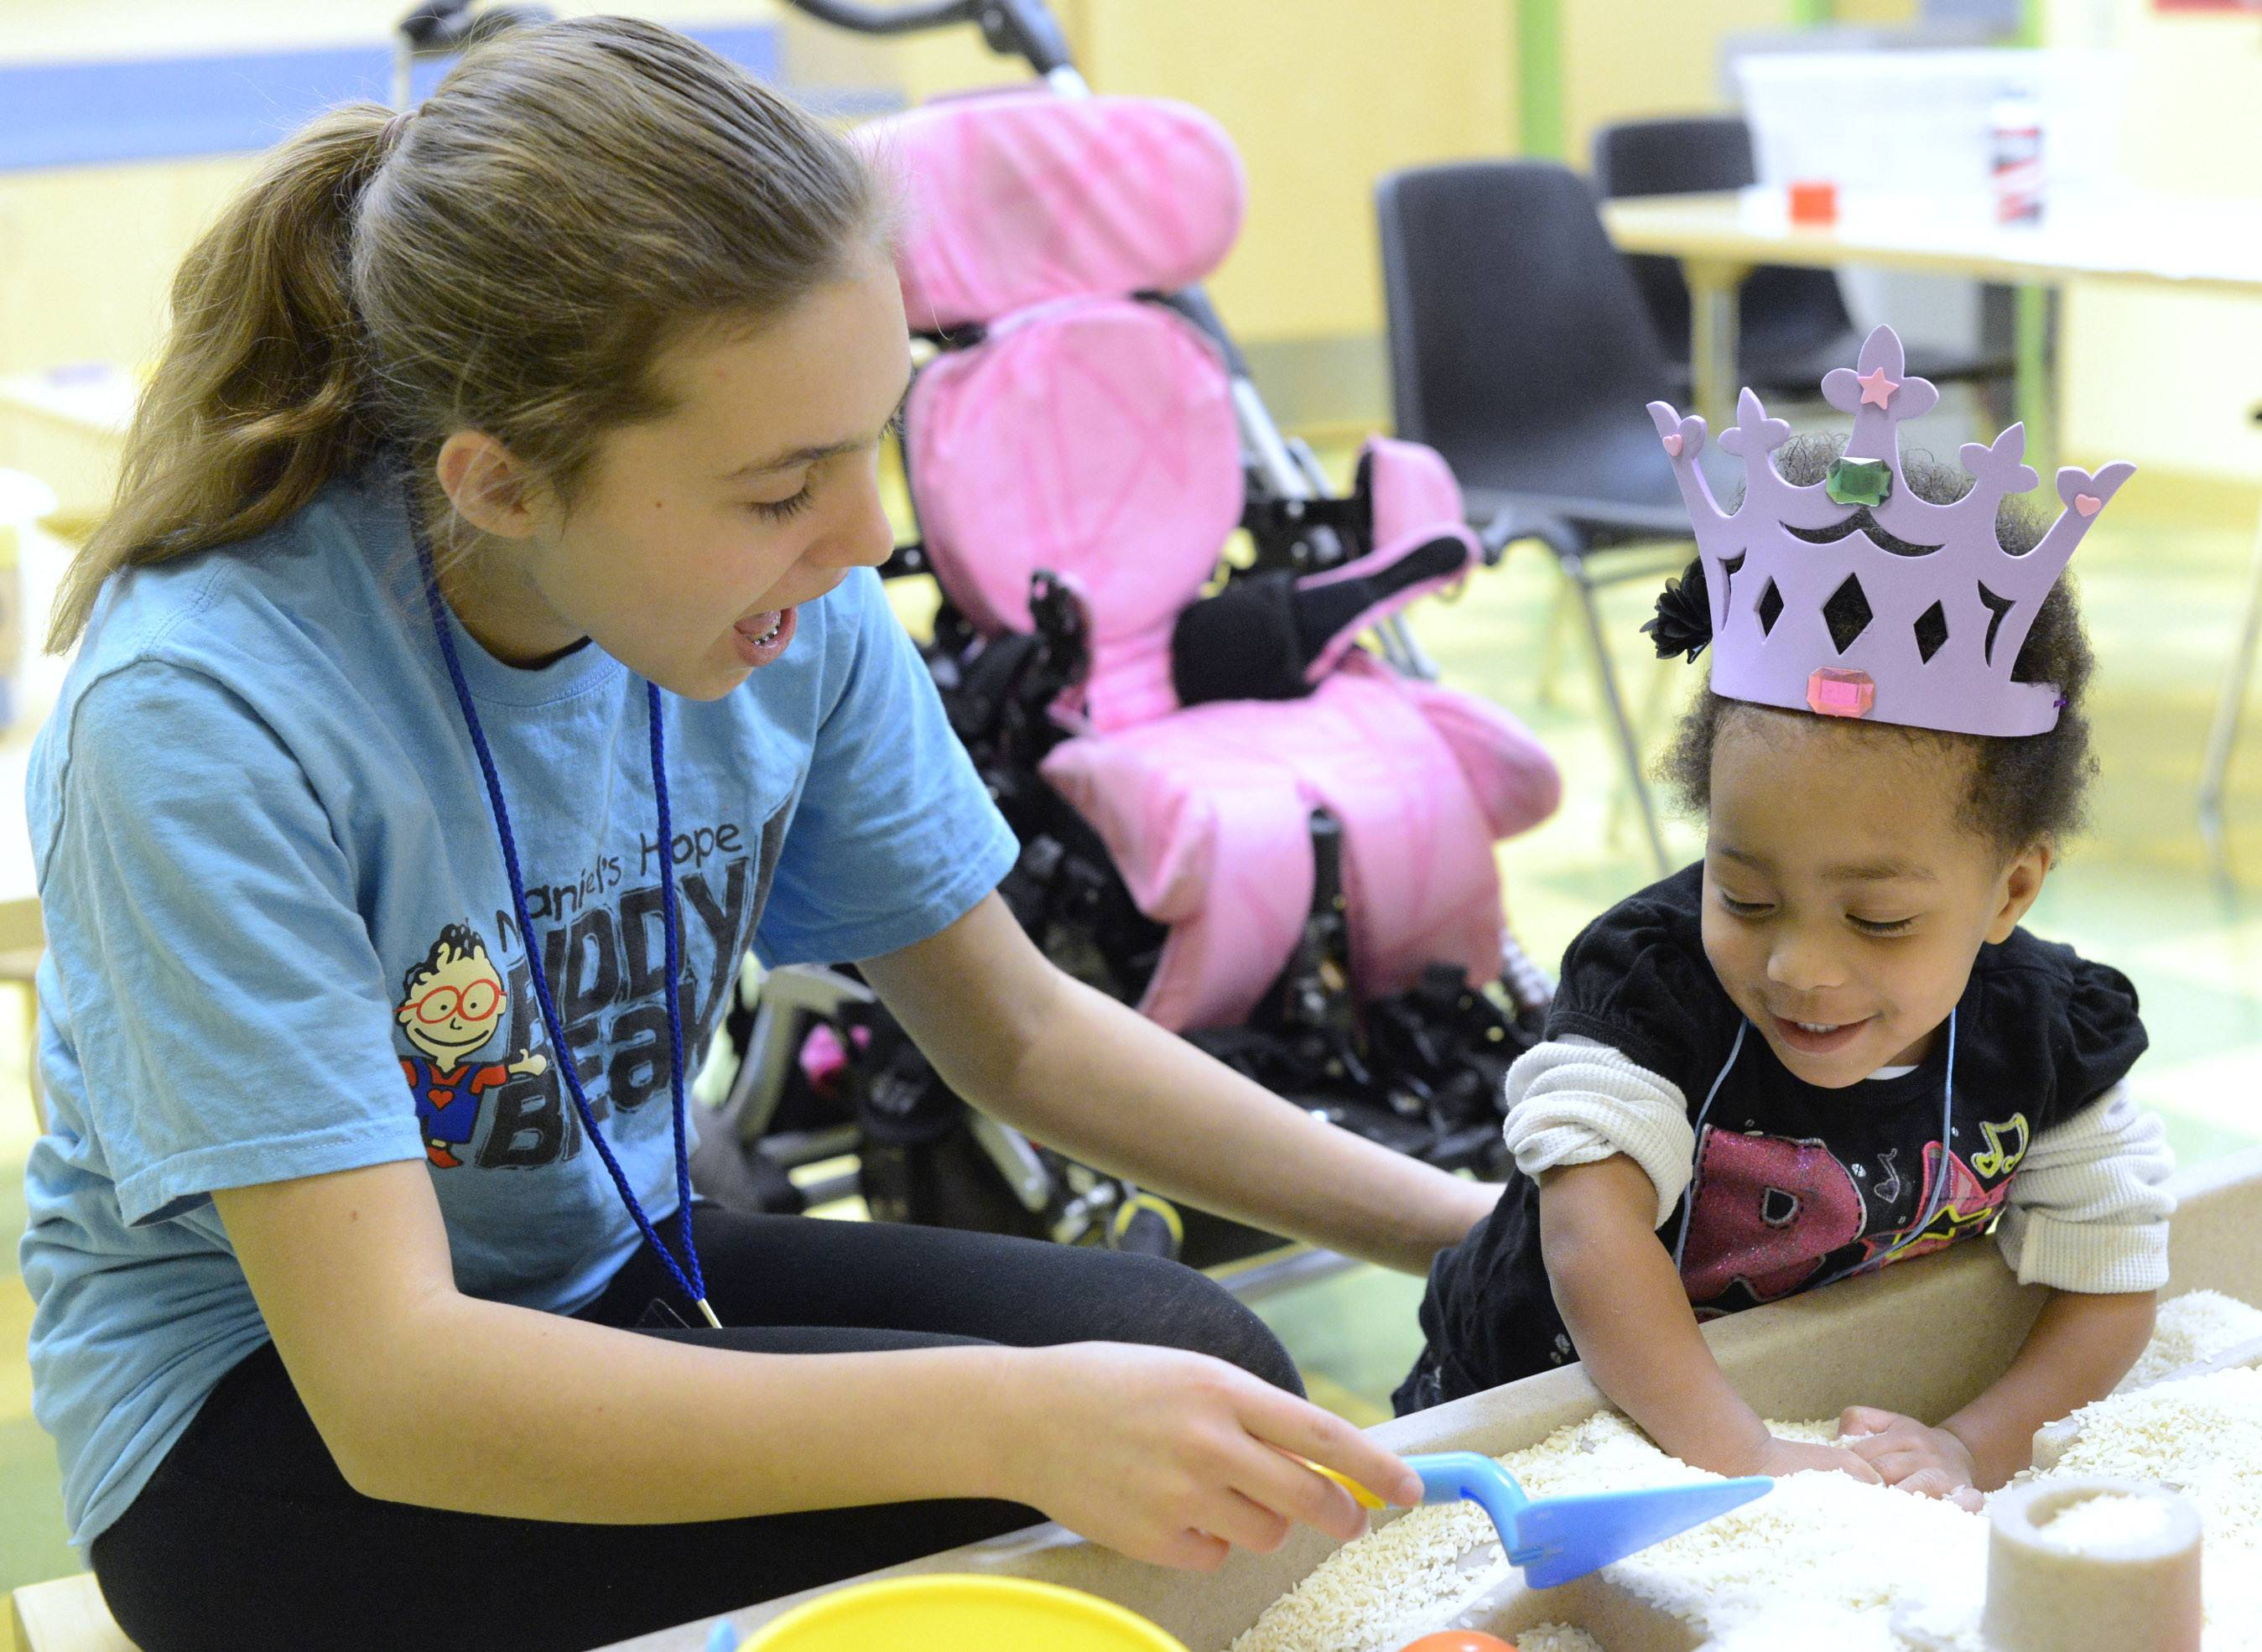 Rachel Christopherson, 13, of Aurora works with Kei'anna Bateman of Kaneville playing at a rice table during a Nathaniel's Hope Buddy Break program at First Baptist Church in Geneva. Kei'anna uses a wheelchair, and having her stand at the table helps her use her support herself and strengthen her legs.